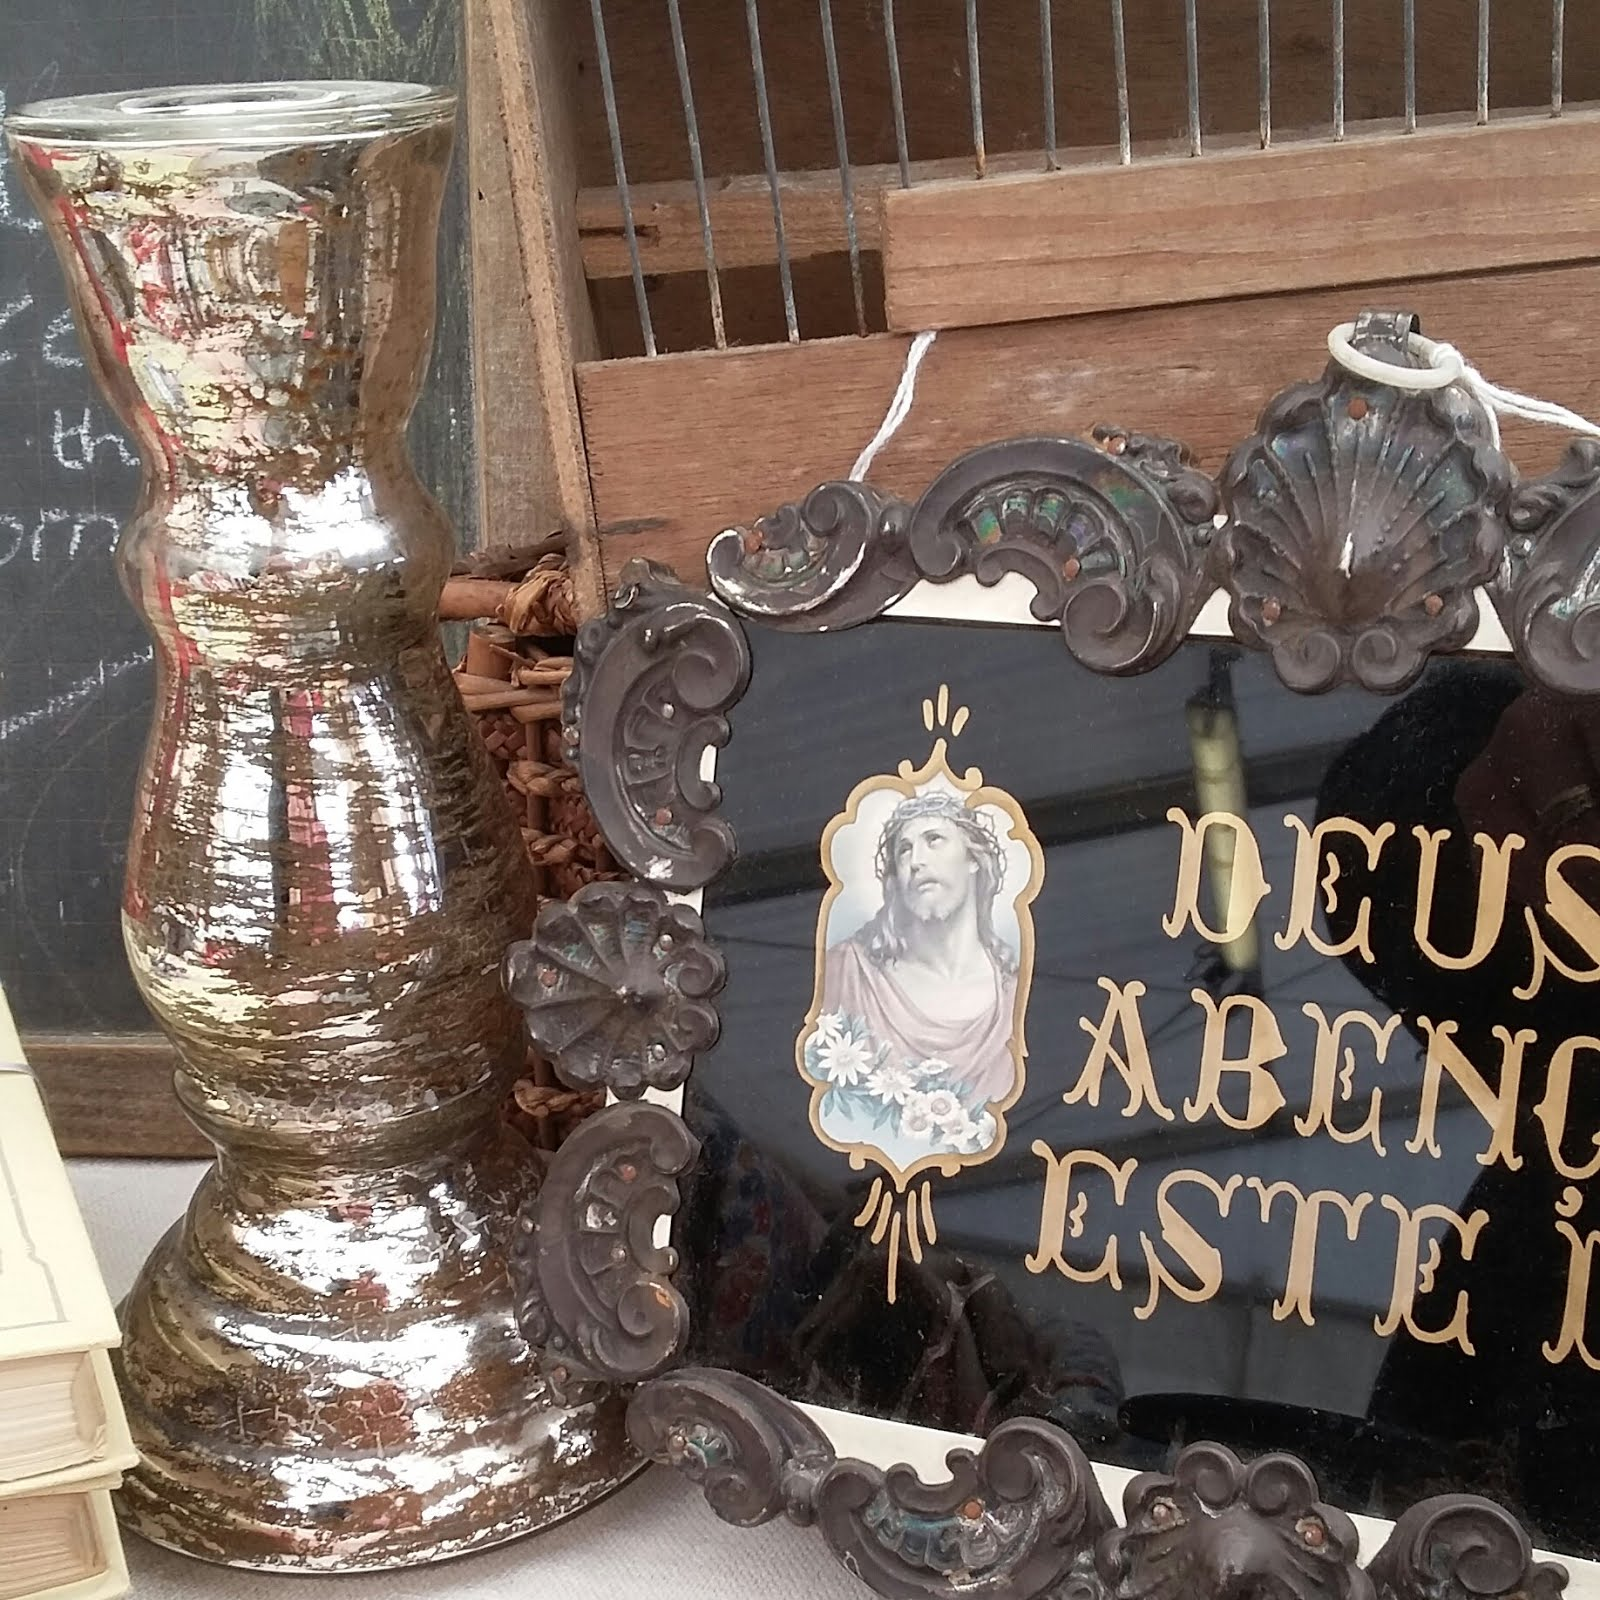 Peterborough Antique and Collectors Fair